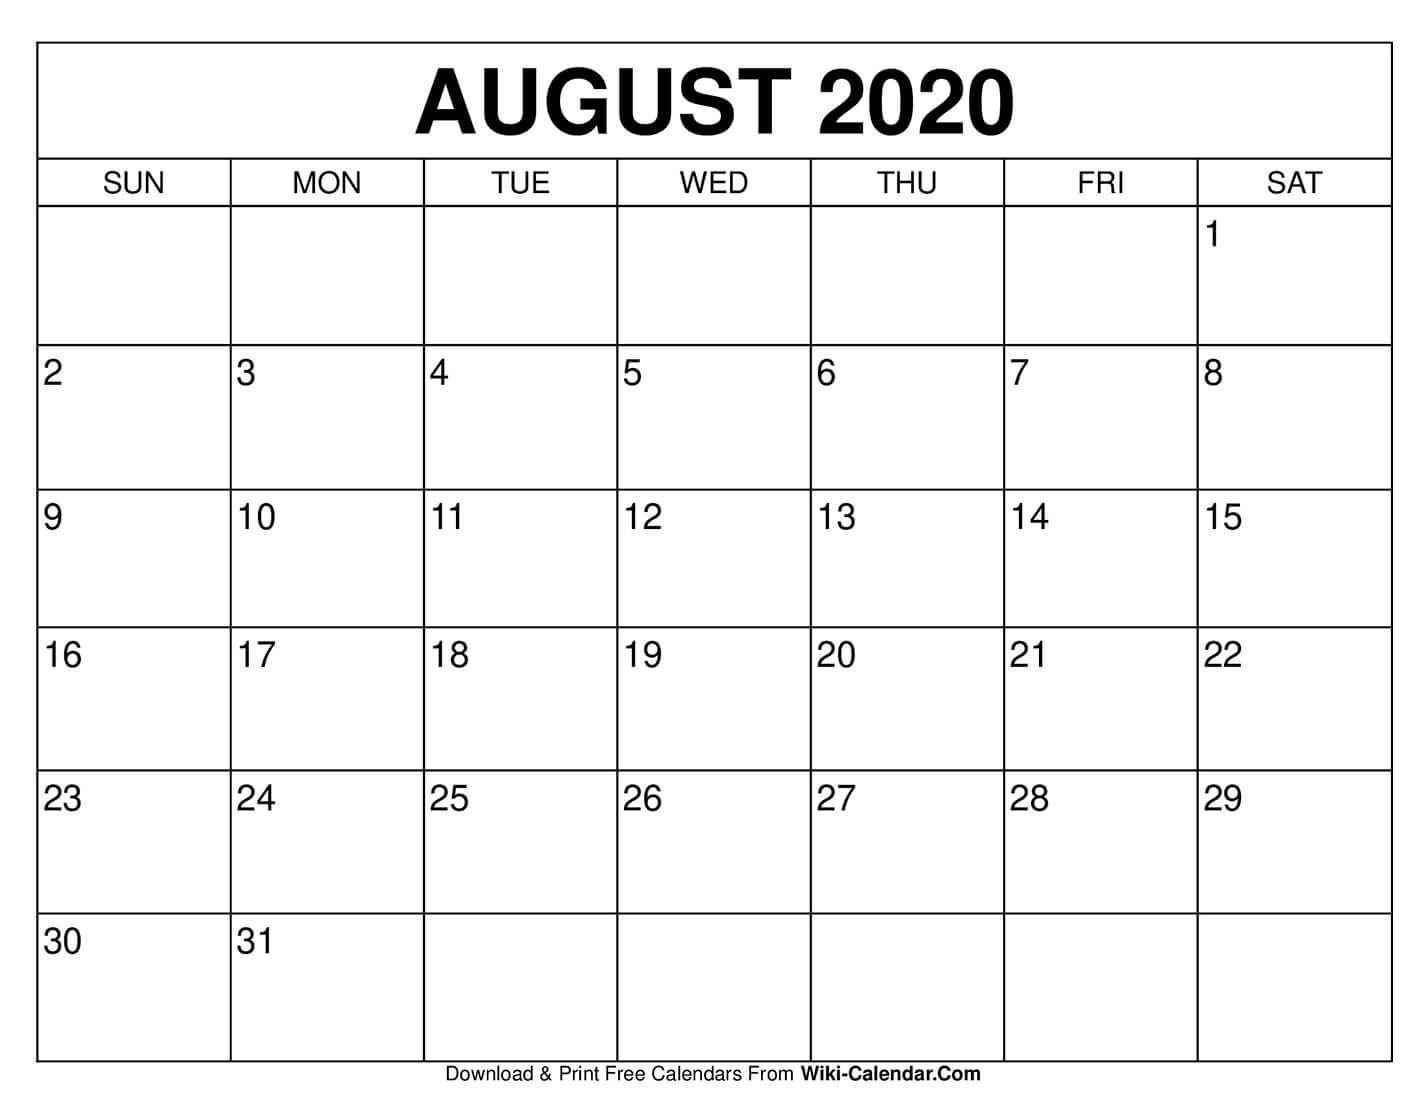 Create Your Free Calendar You Can Edit In 2020 | Calendar Printable Calenders You Can Edit